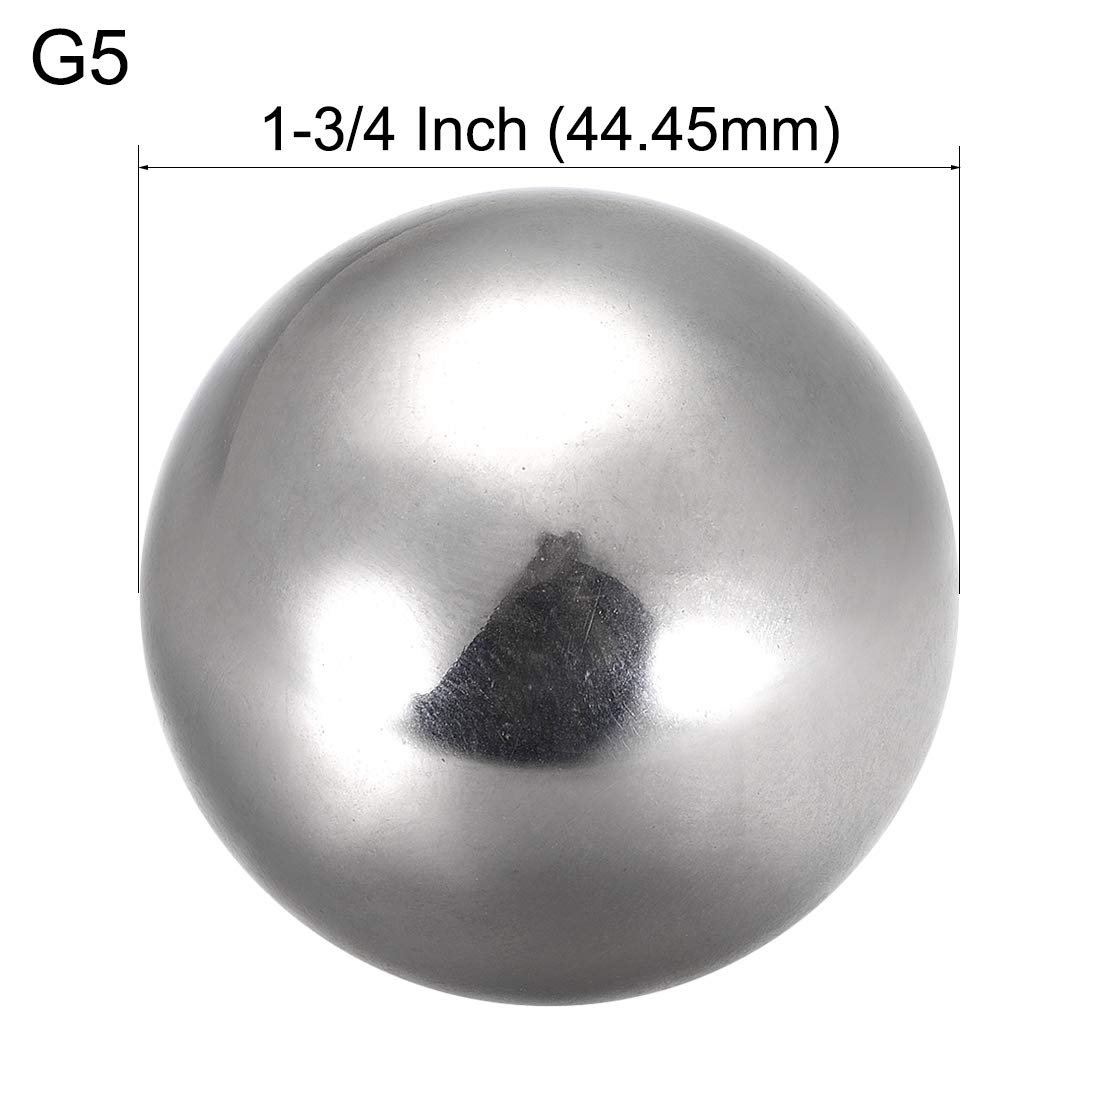 sourcing map Precision 304 Stainless Steel Bearing Balls 1-3//4 Inch 44.45mm G5